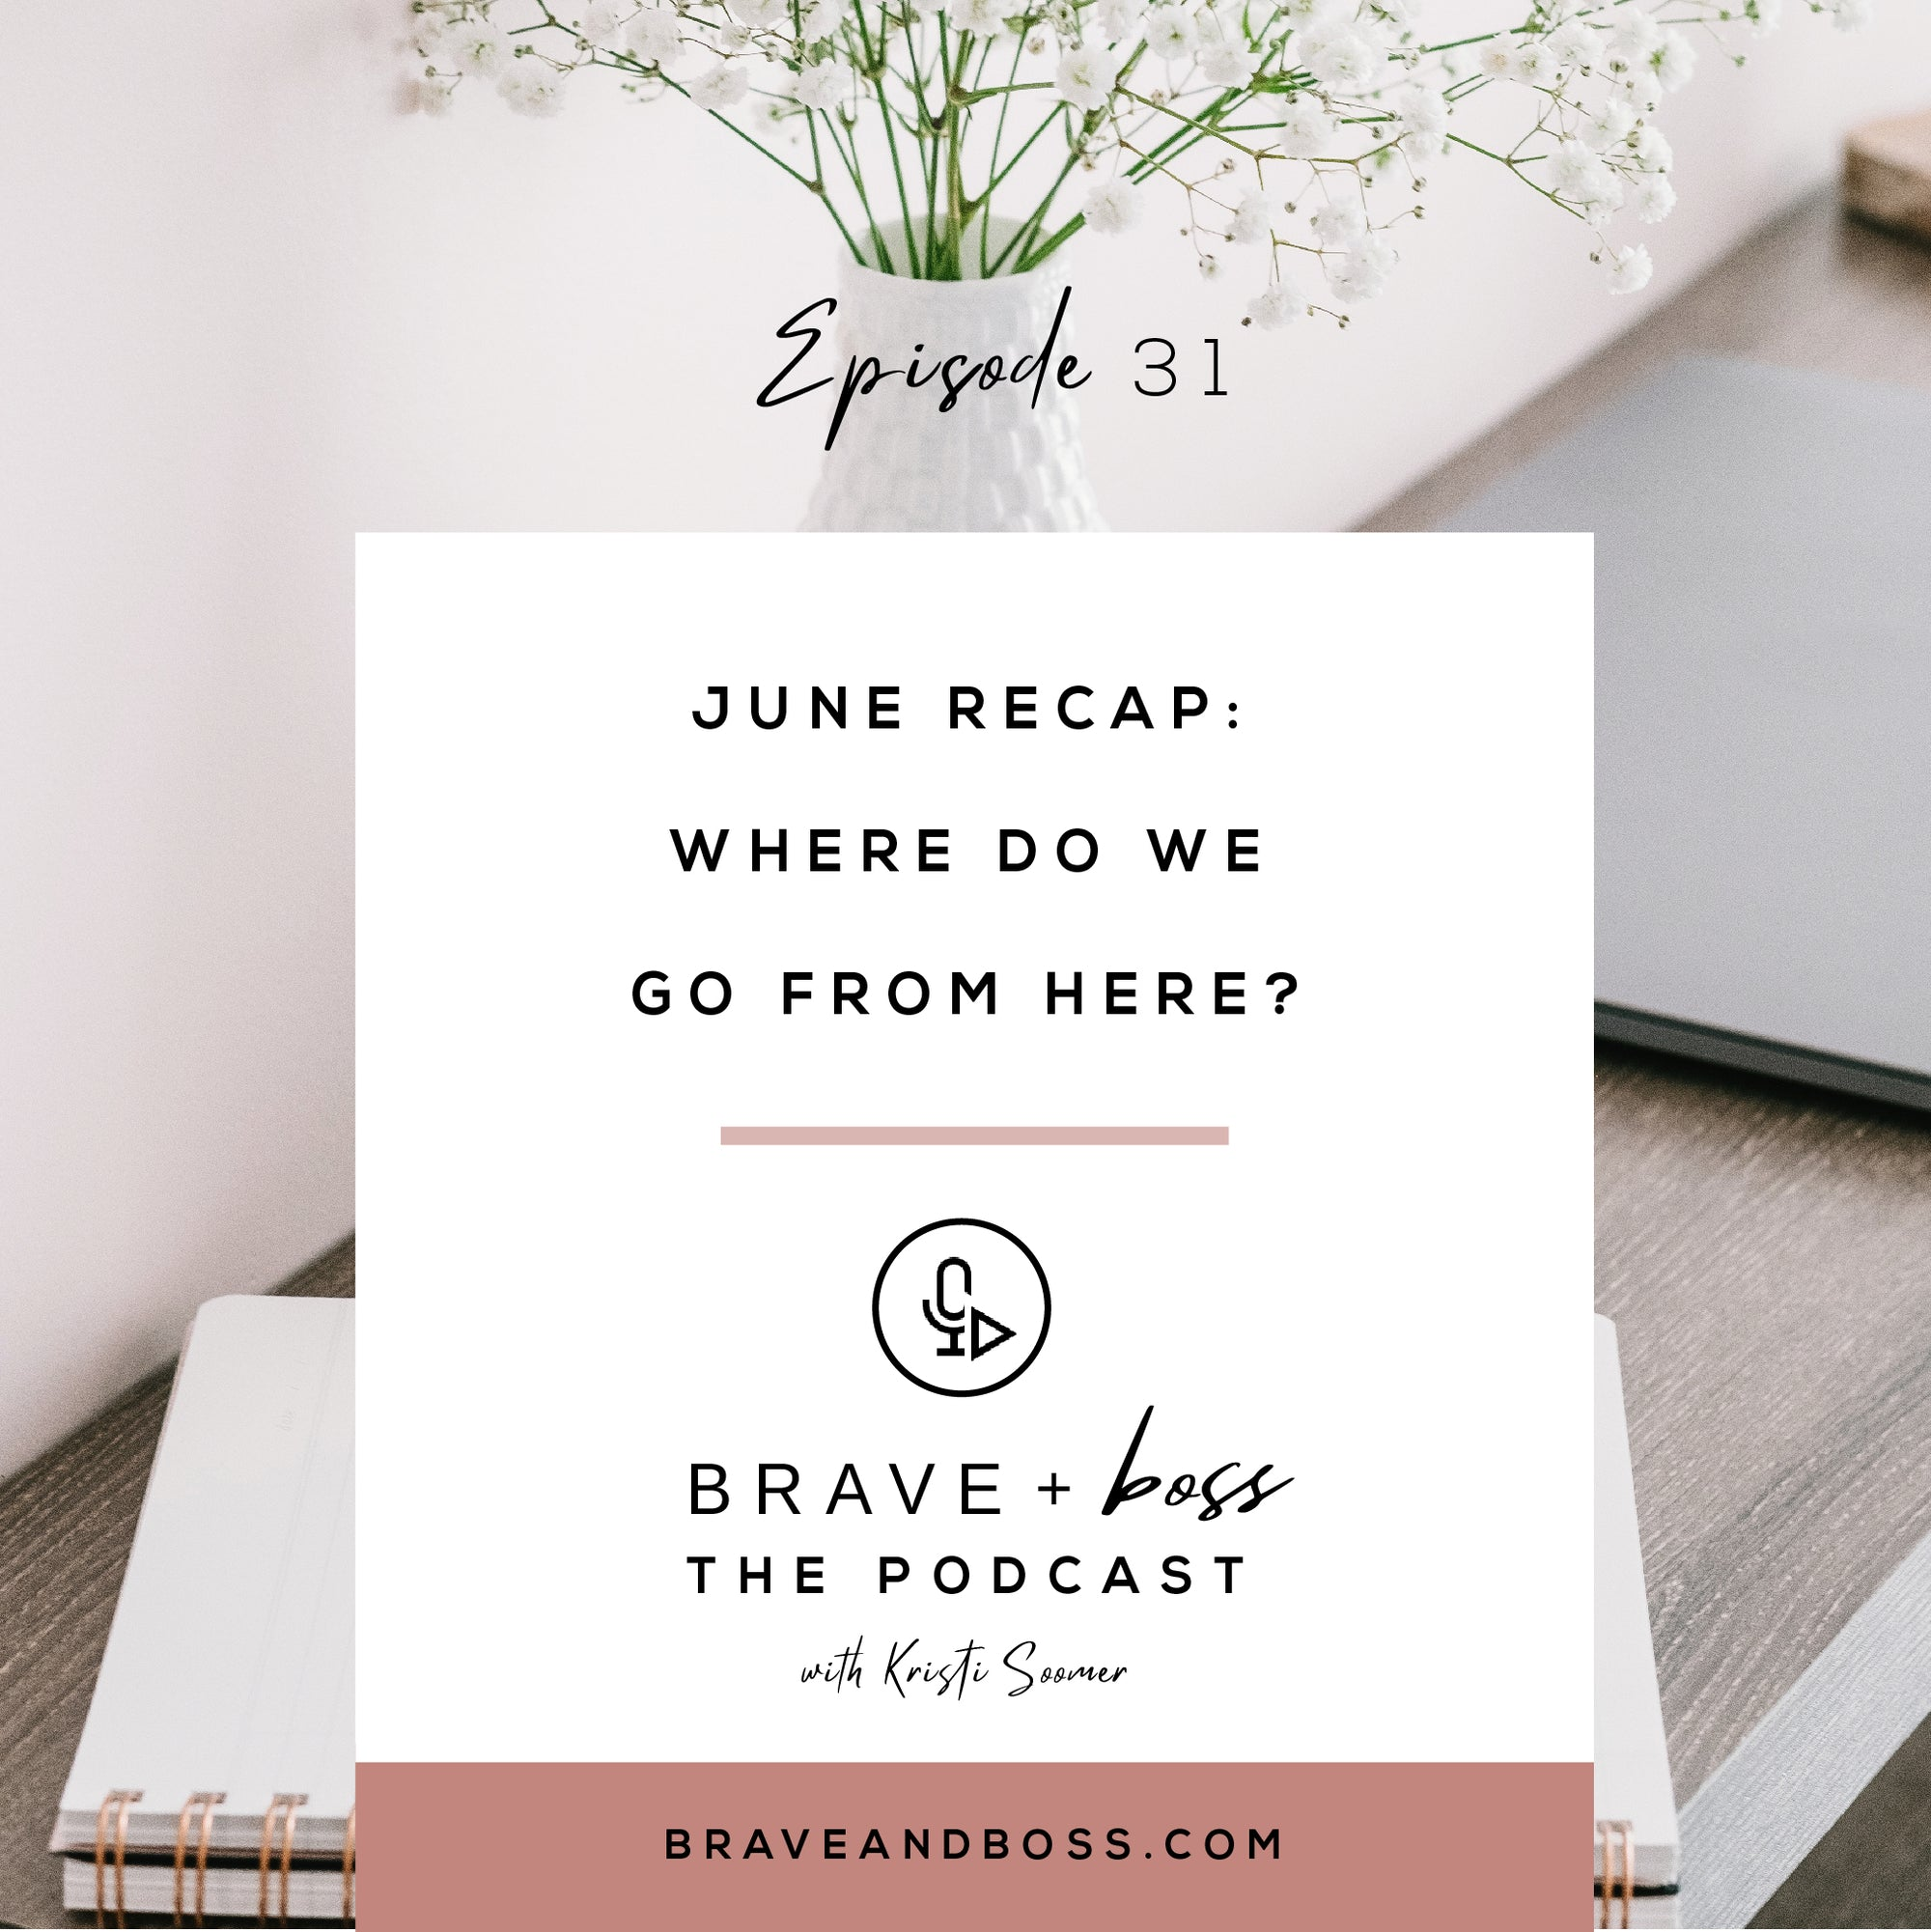 June Recap: Where do we go from here?